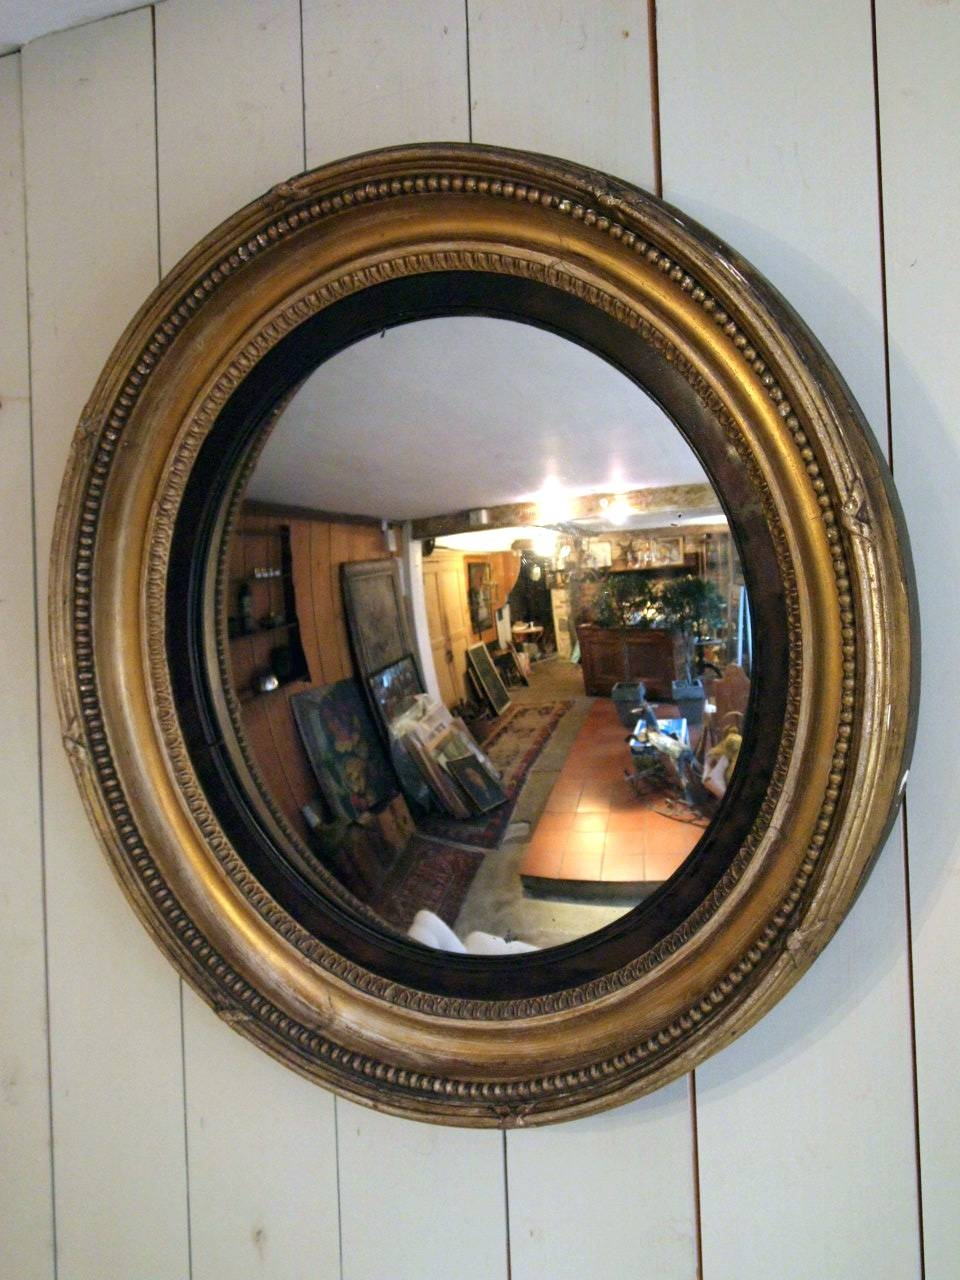 Antique Round Convex Mirror › Puckhaber Decorative Antiques with regard to Antique Convex Mirrors (Image 5 of 15)